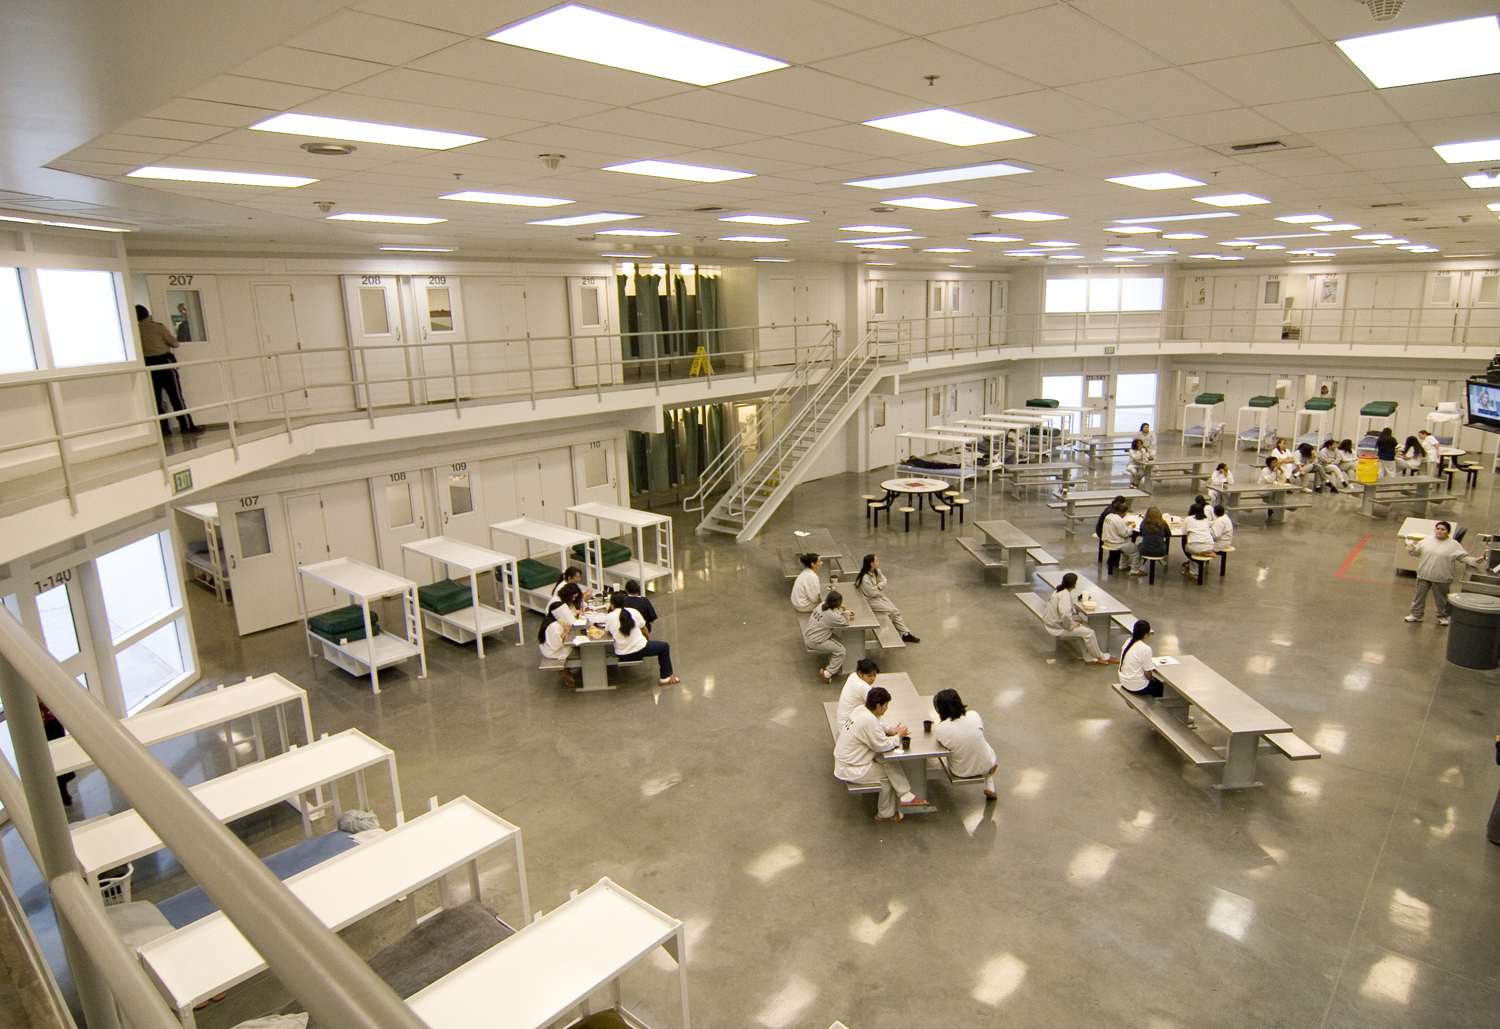 A photo of immigration detention center